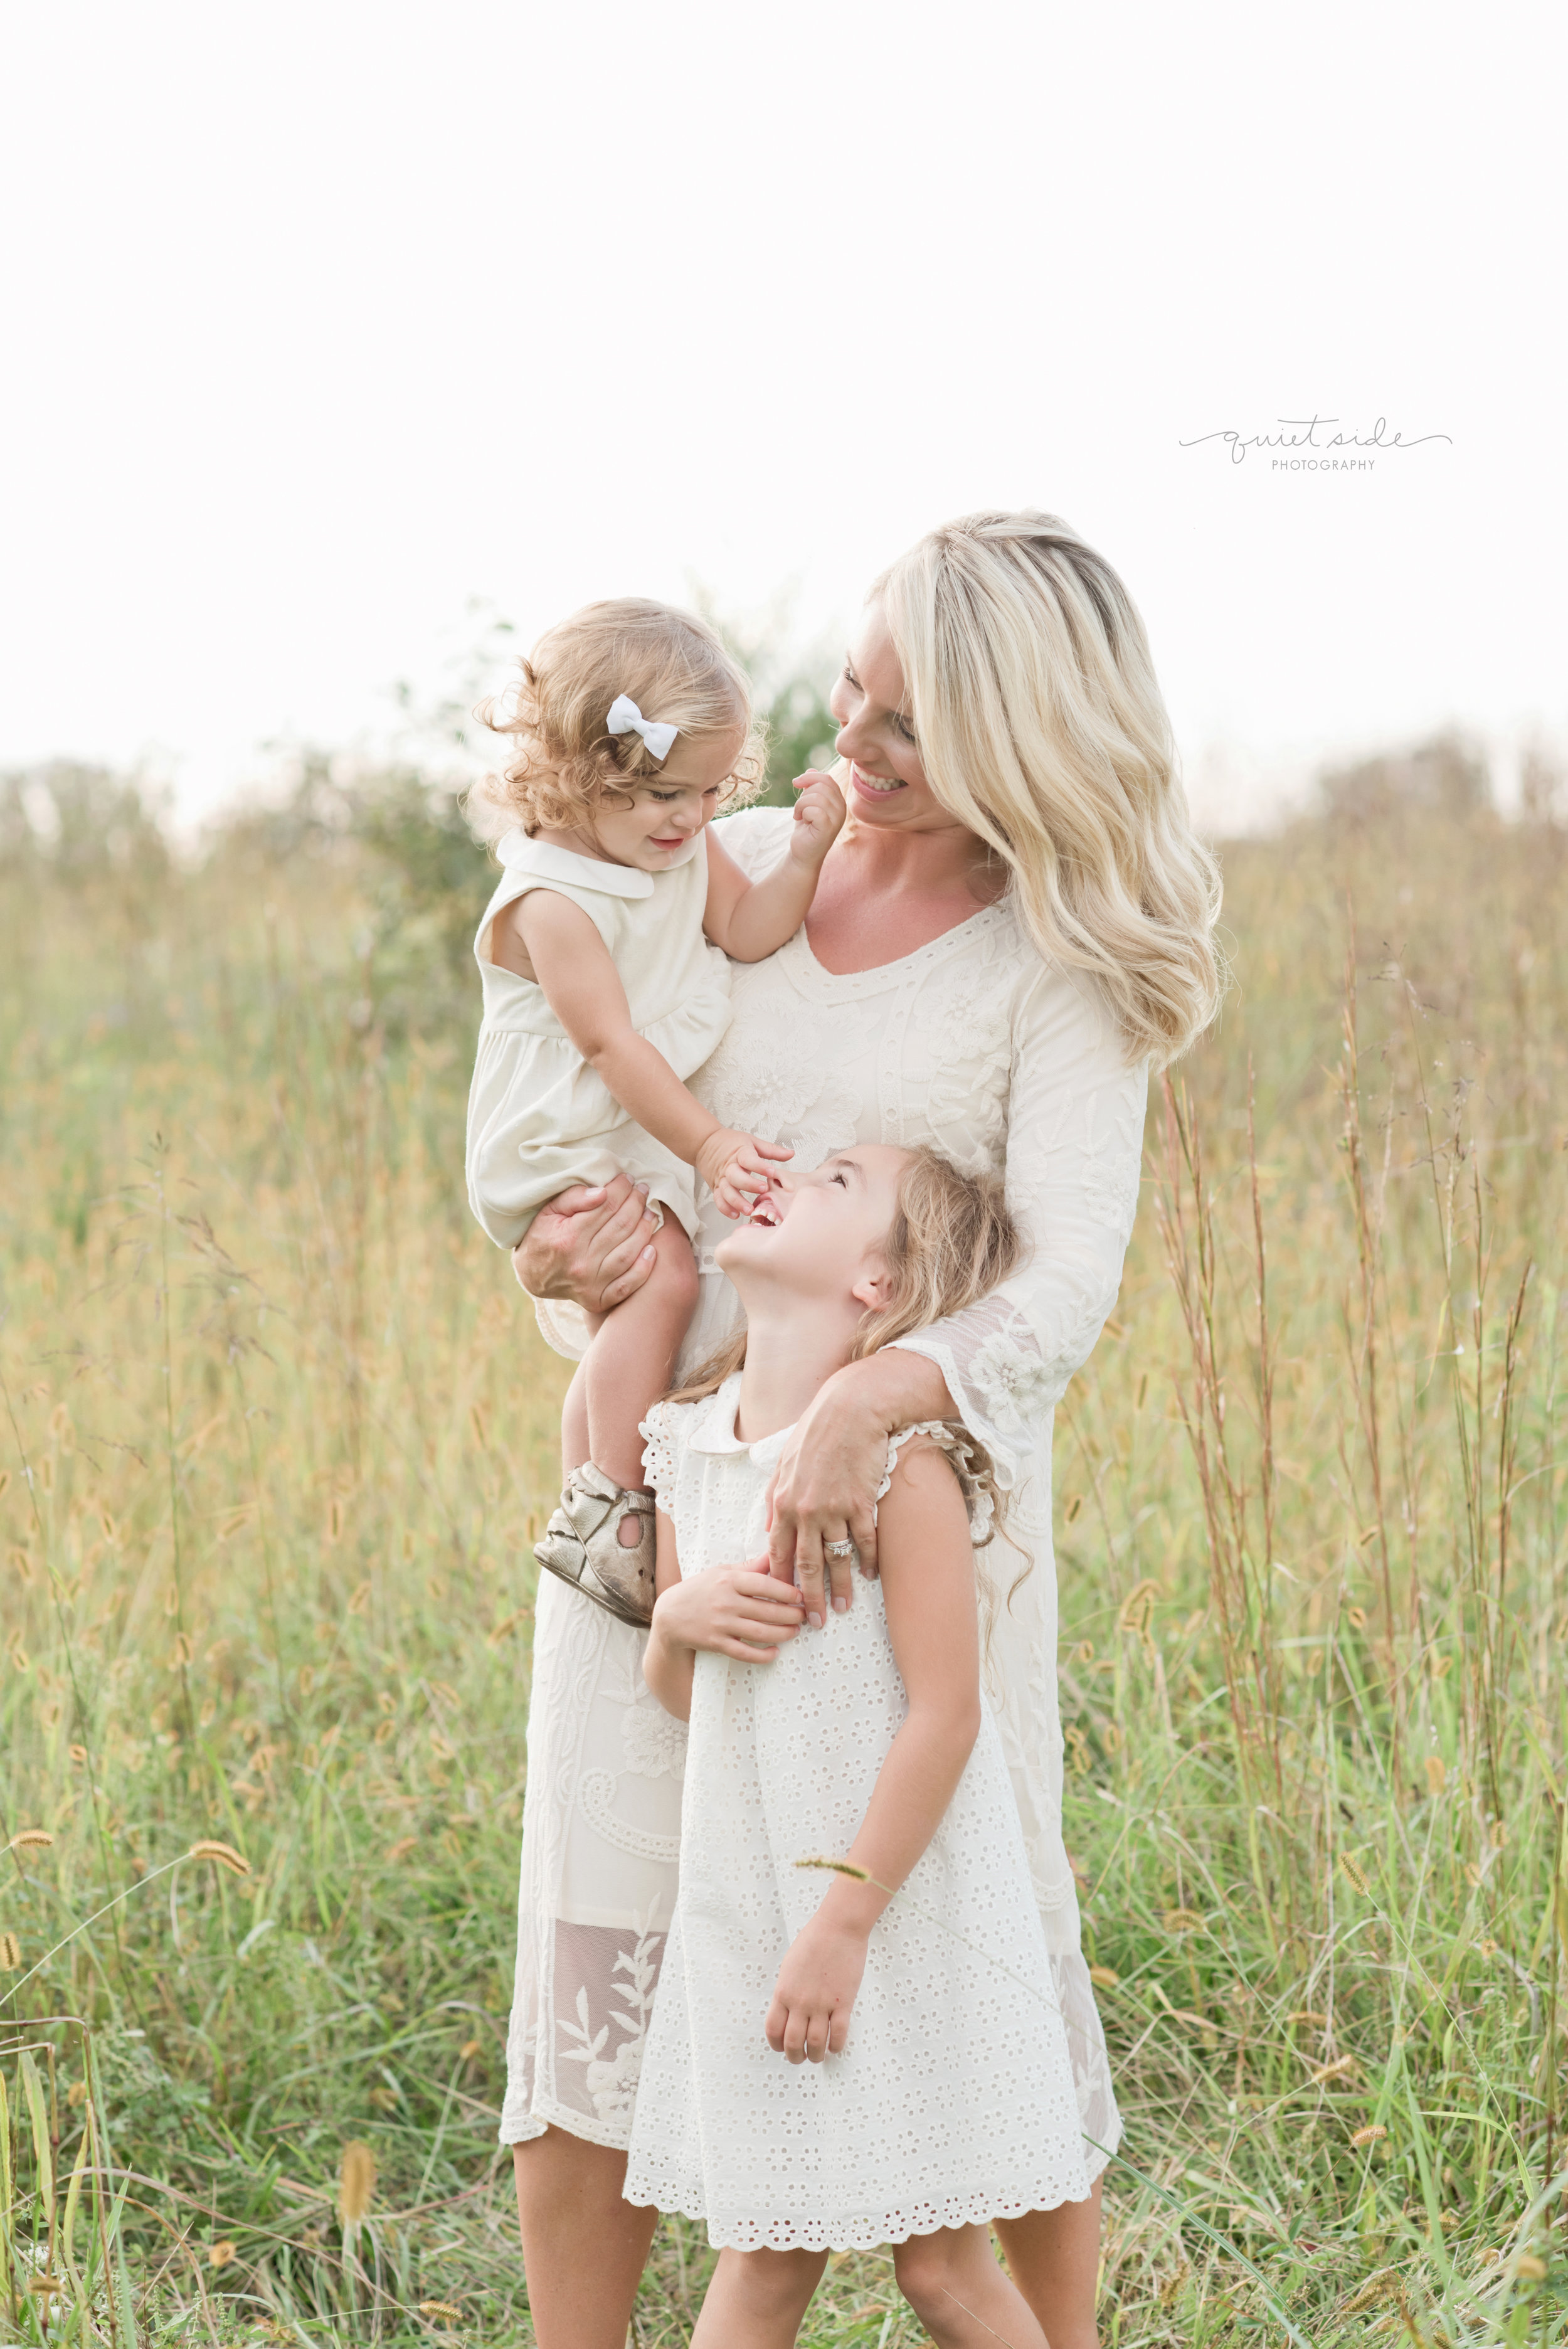 Loudoun-County-Photographer-Family-Photographer-Newborn-Maternity-Motherhood-NorthernVA-Family-Photogarpher-48Fields-AshburnVA-SmithFamily-quietsidephotography.jpg